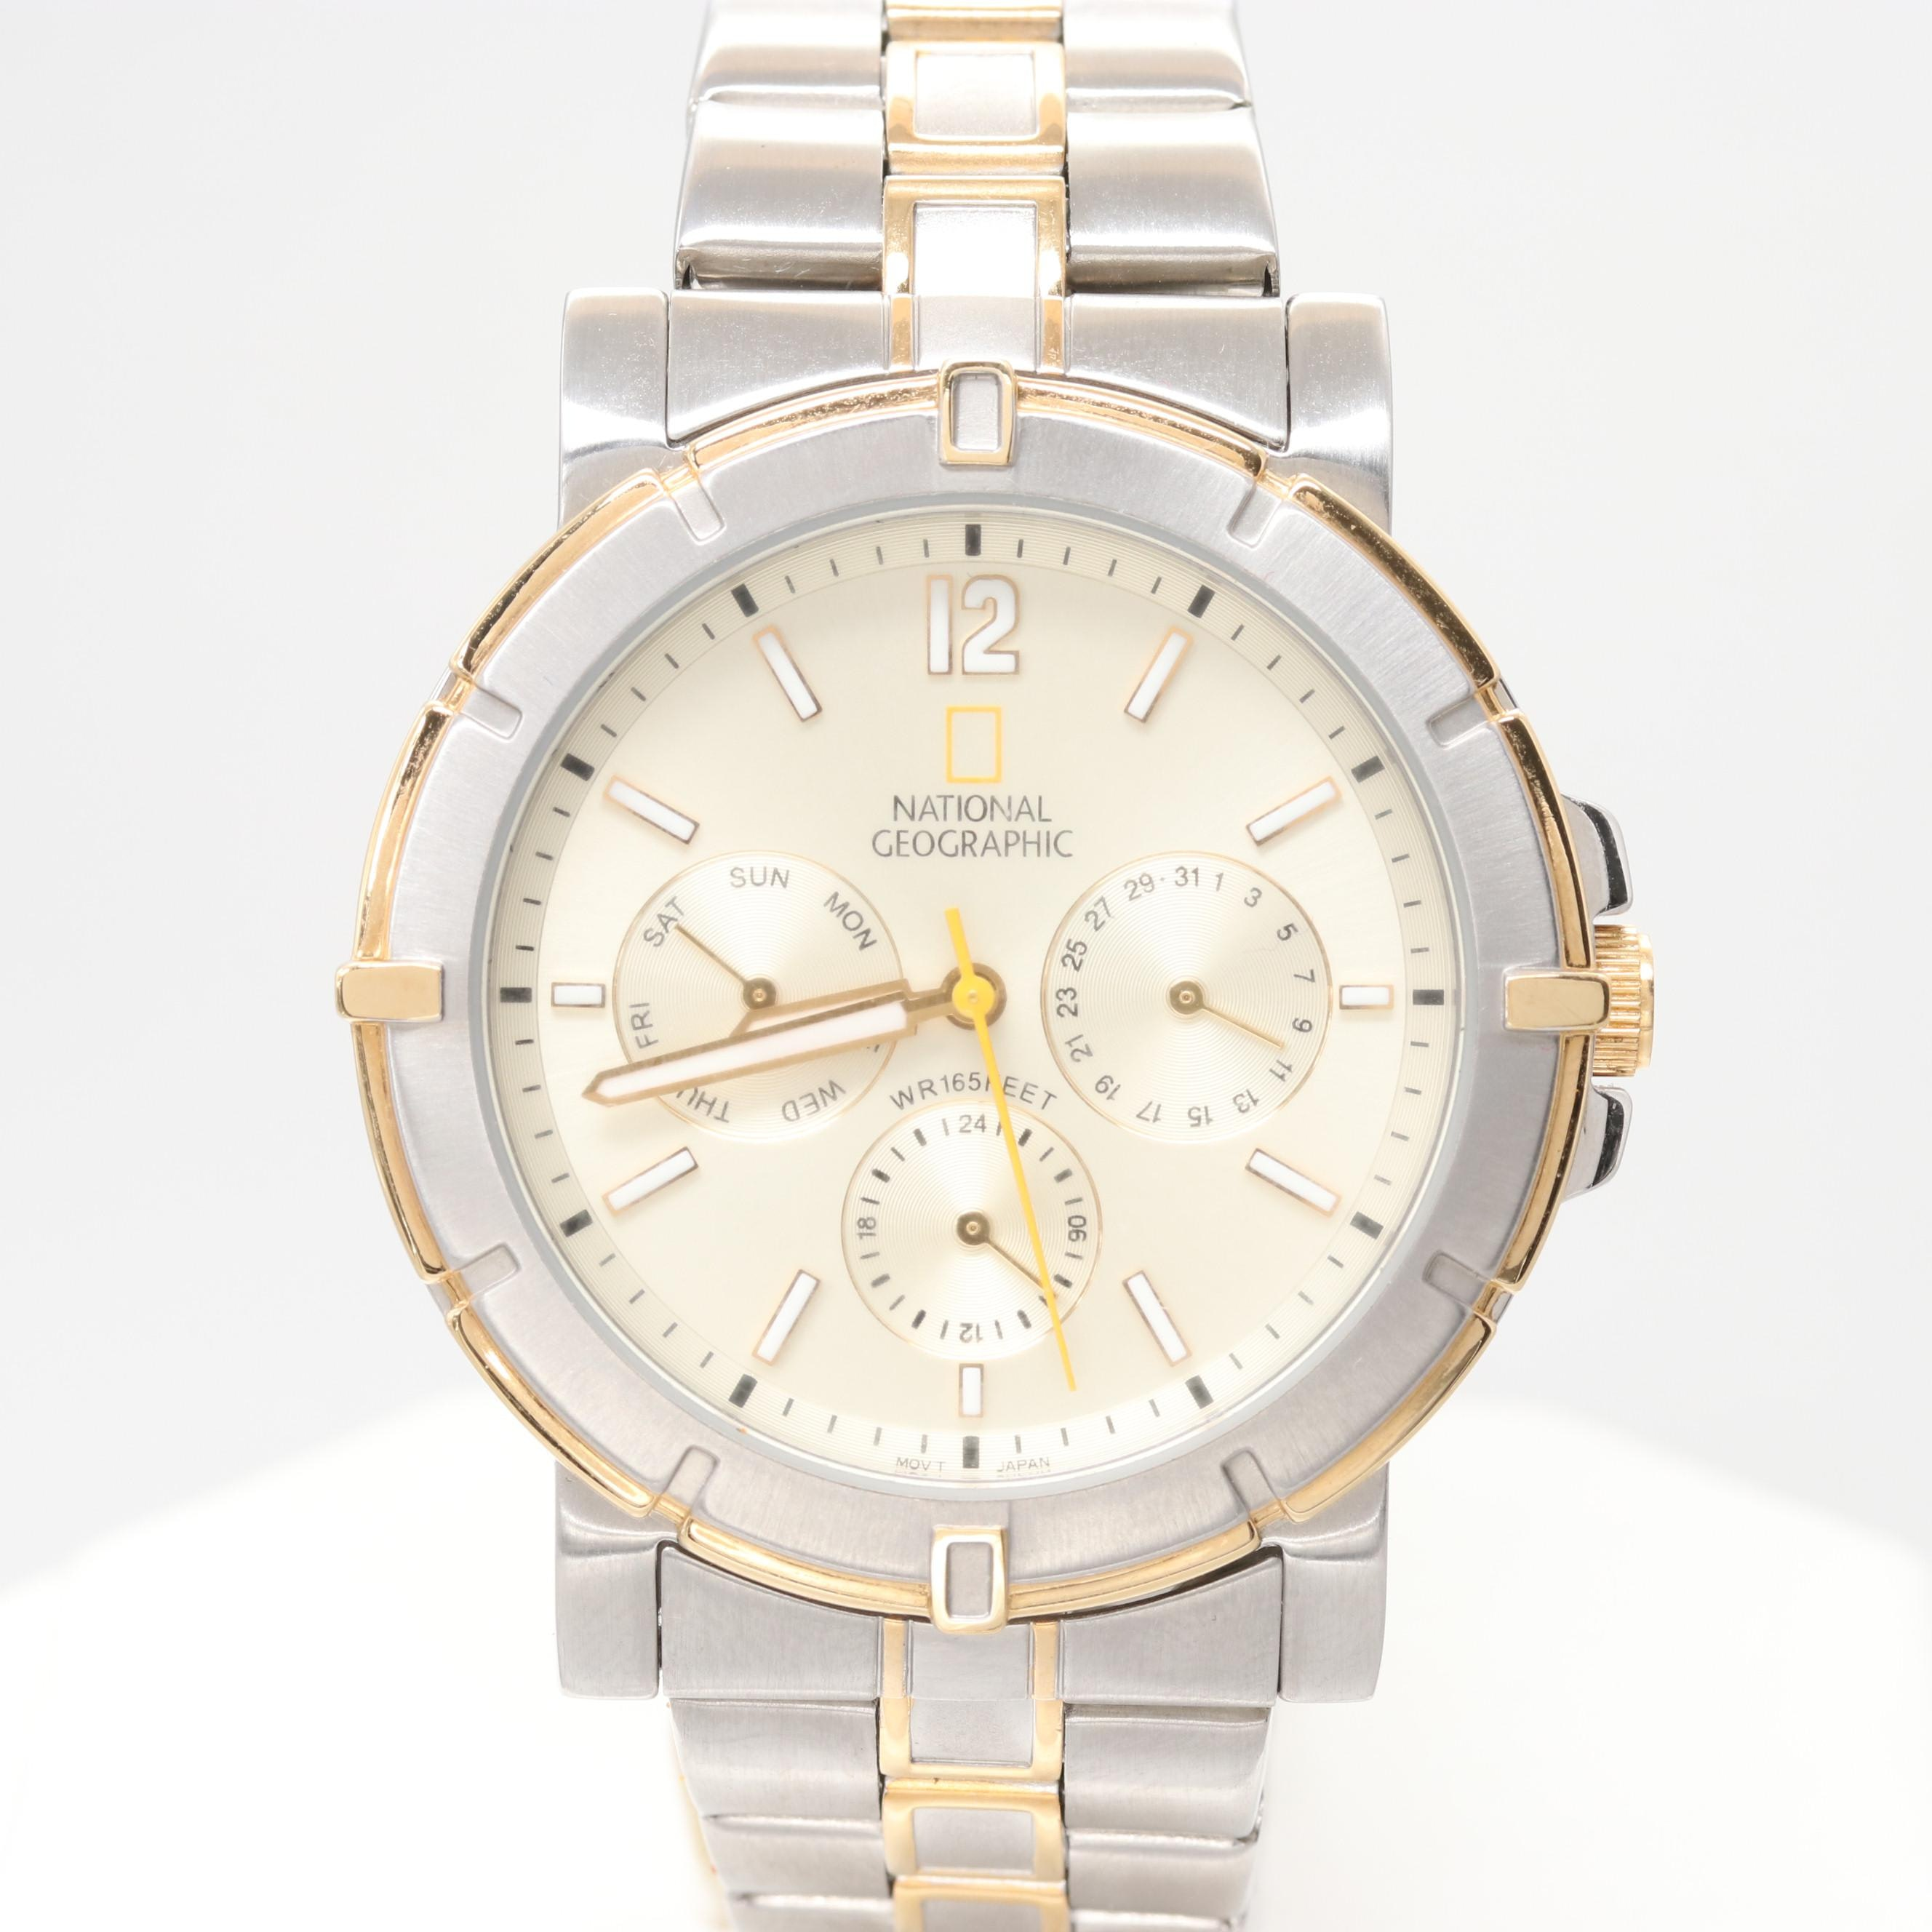 National Geographic Two-Tone Stainless Steel Wristwatch